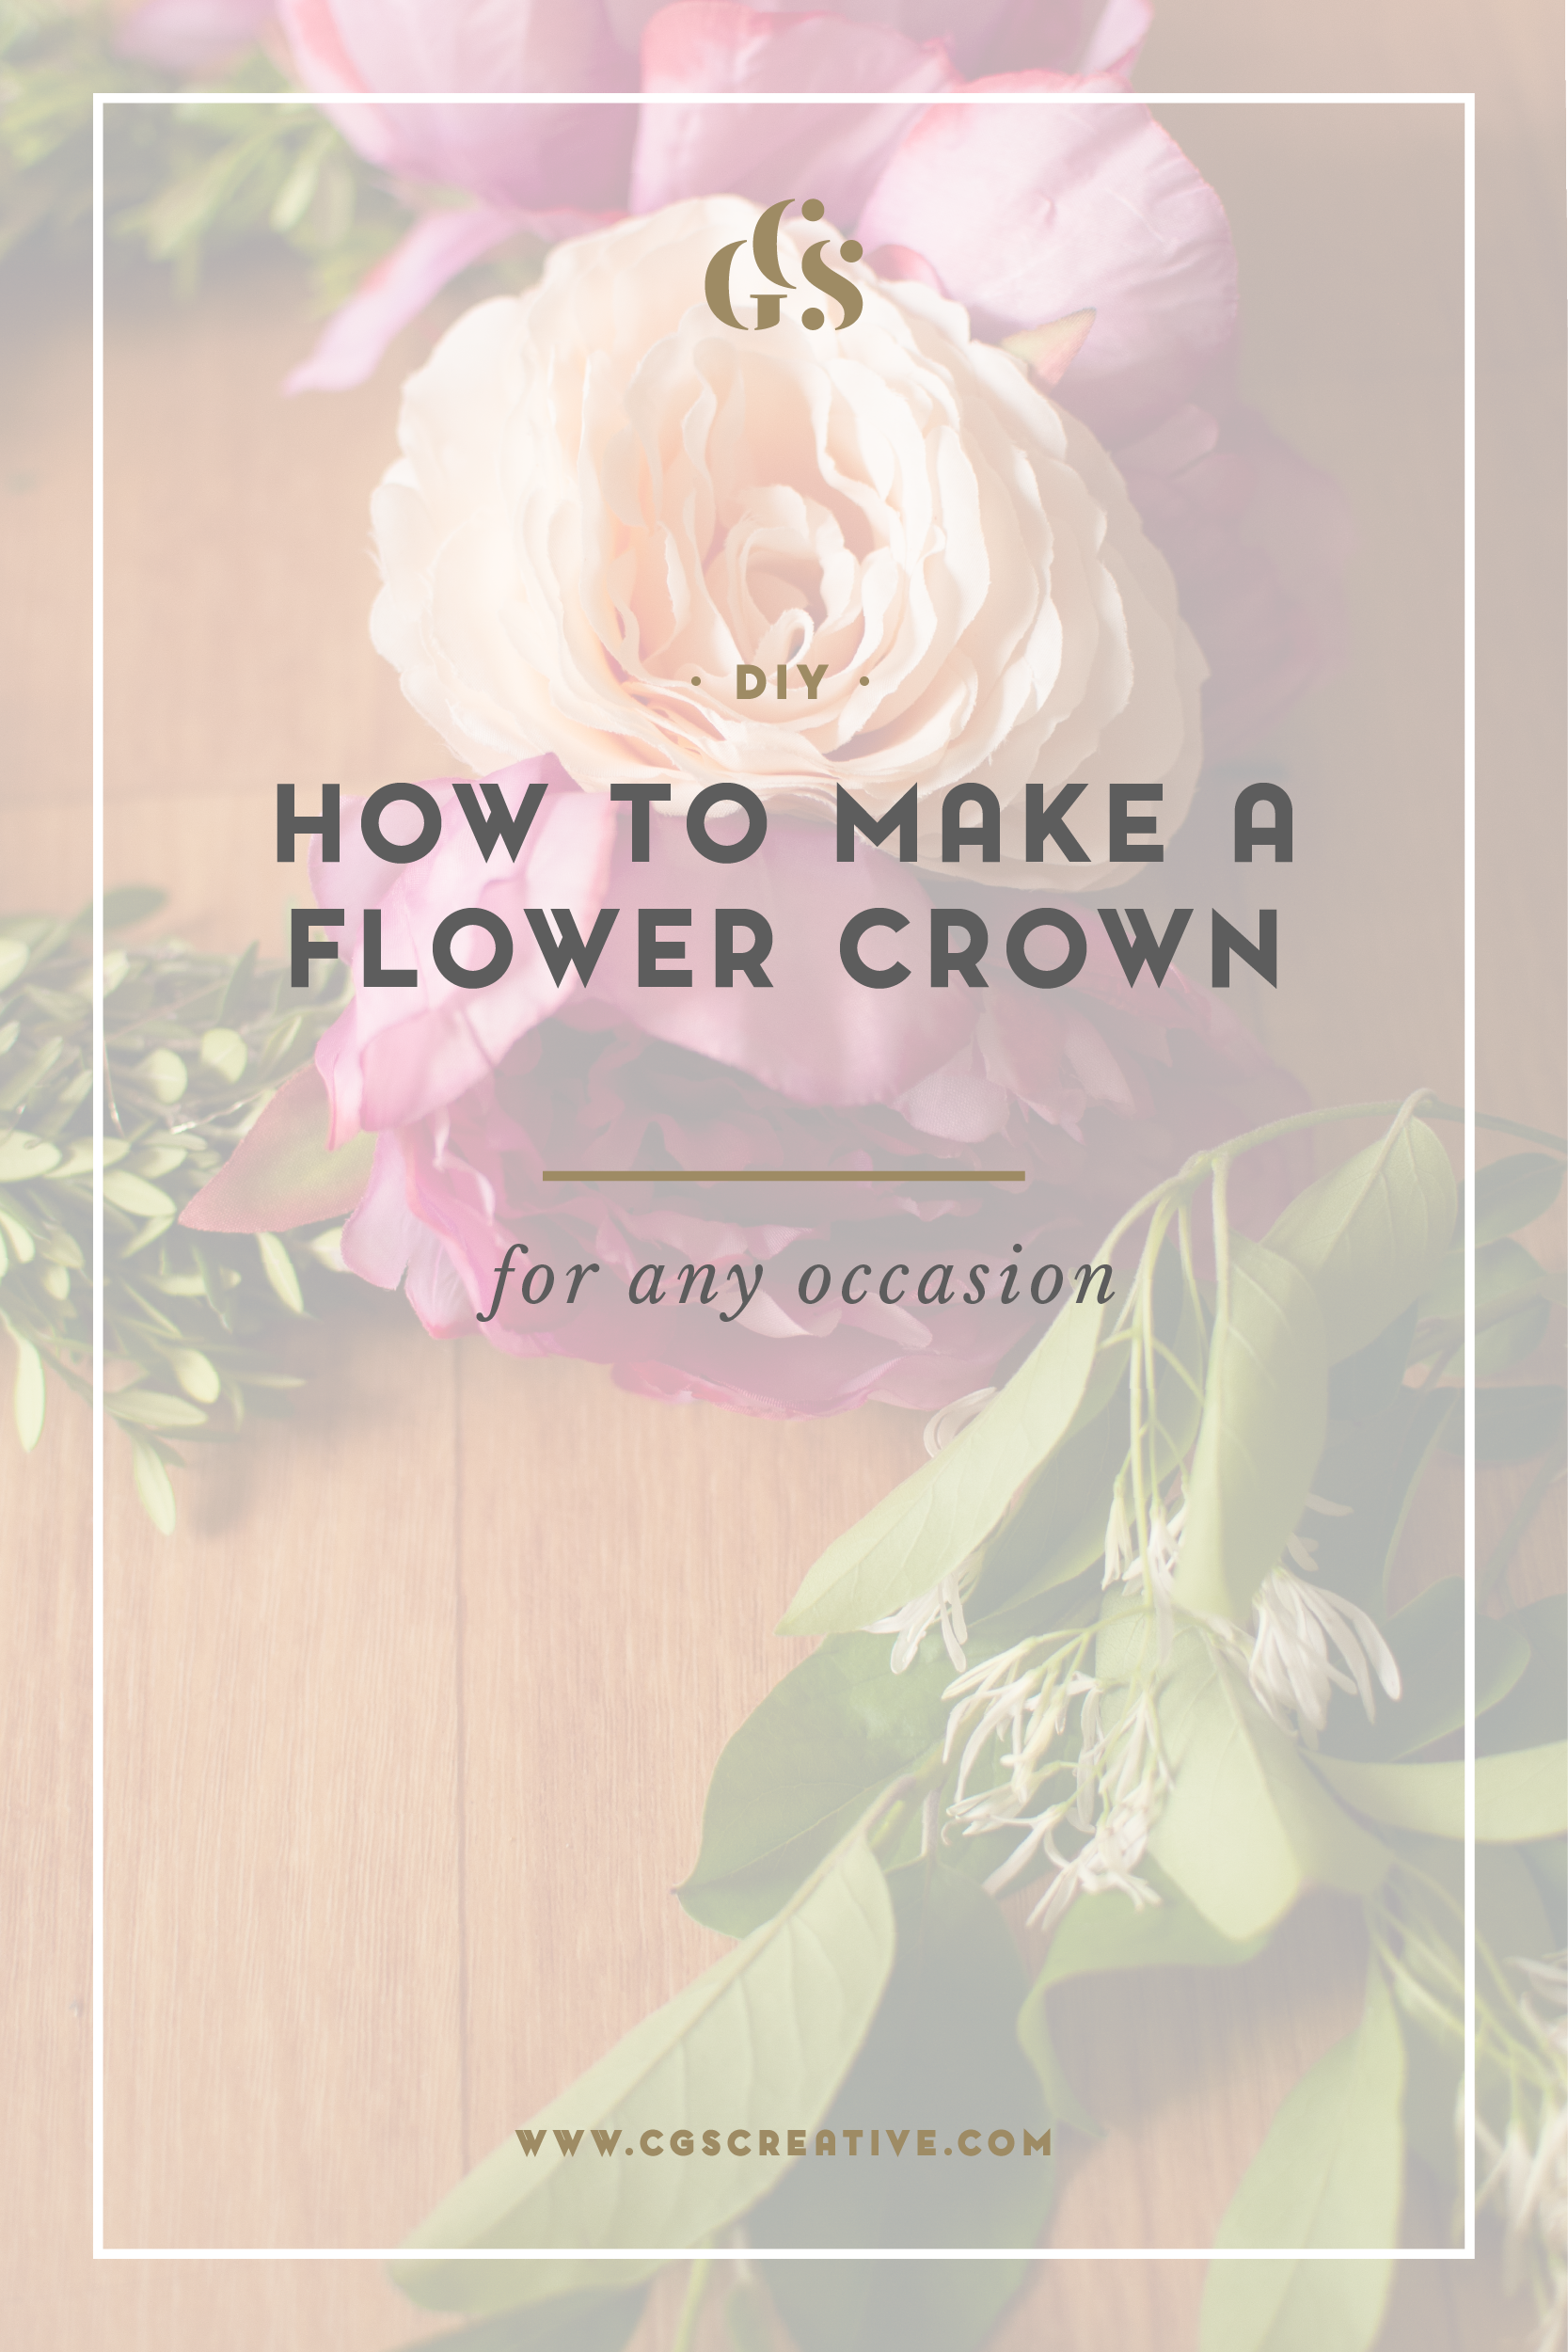 Flower shop near me where can i buy a flower crown flower shop where can i buy a flower crown the flowers are very beautiful here we provide a collections of various pictures of beautiful flowers charming izmirmasajfo